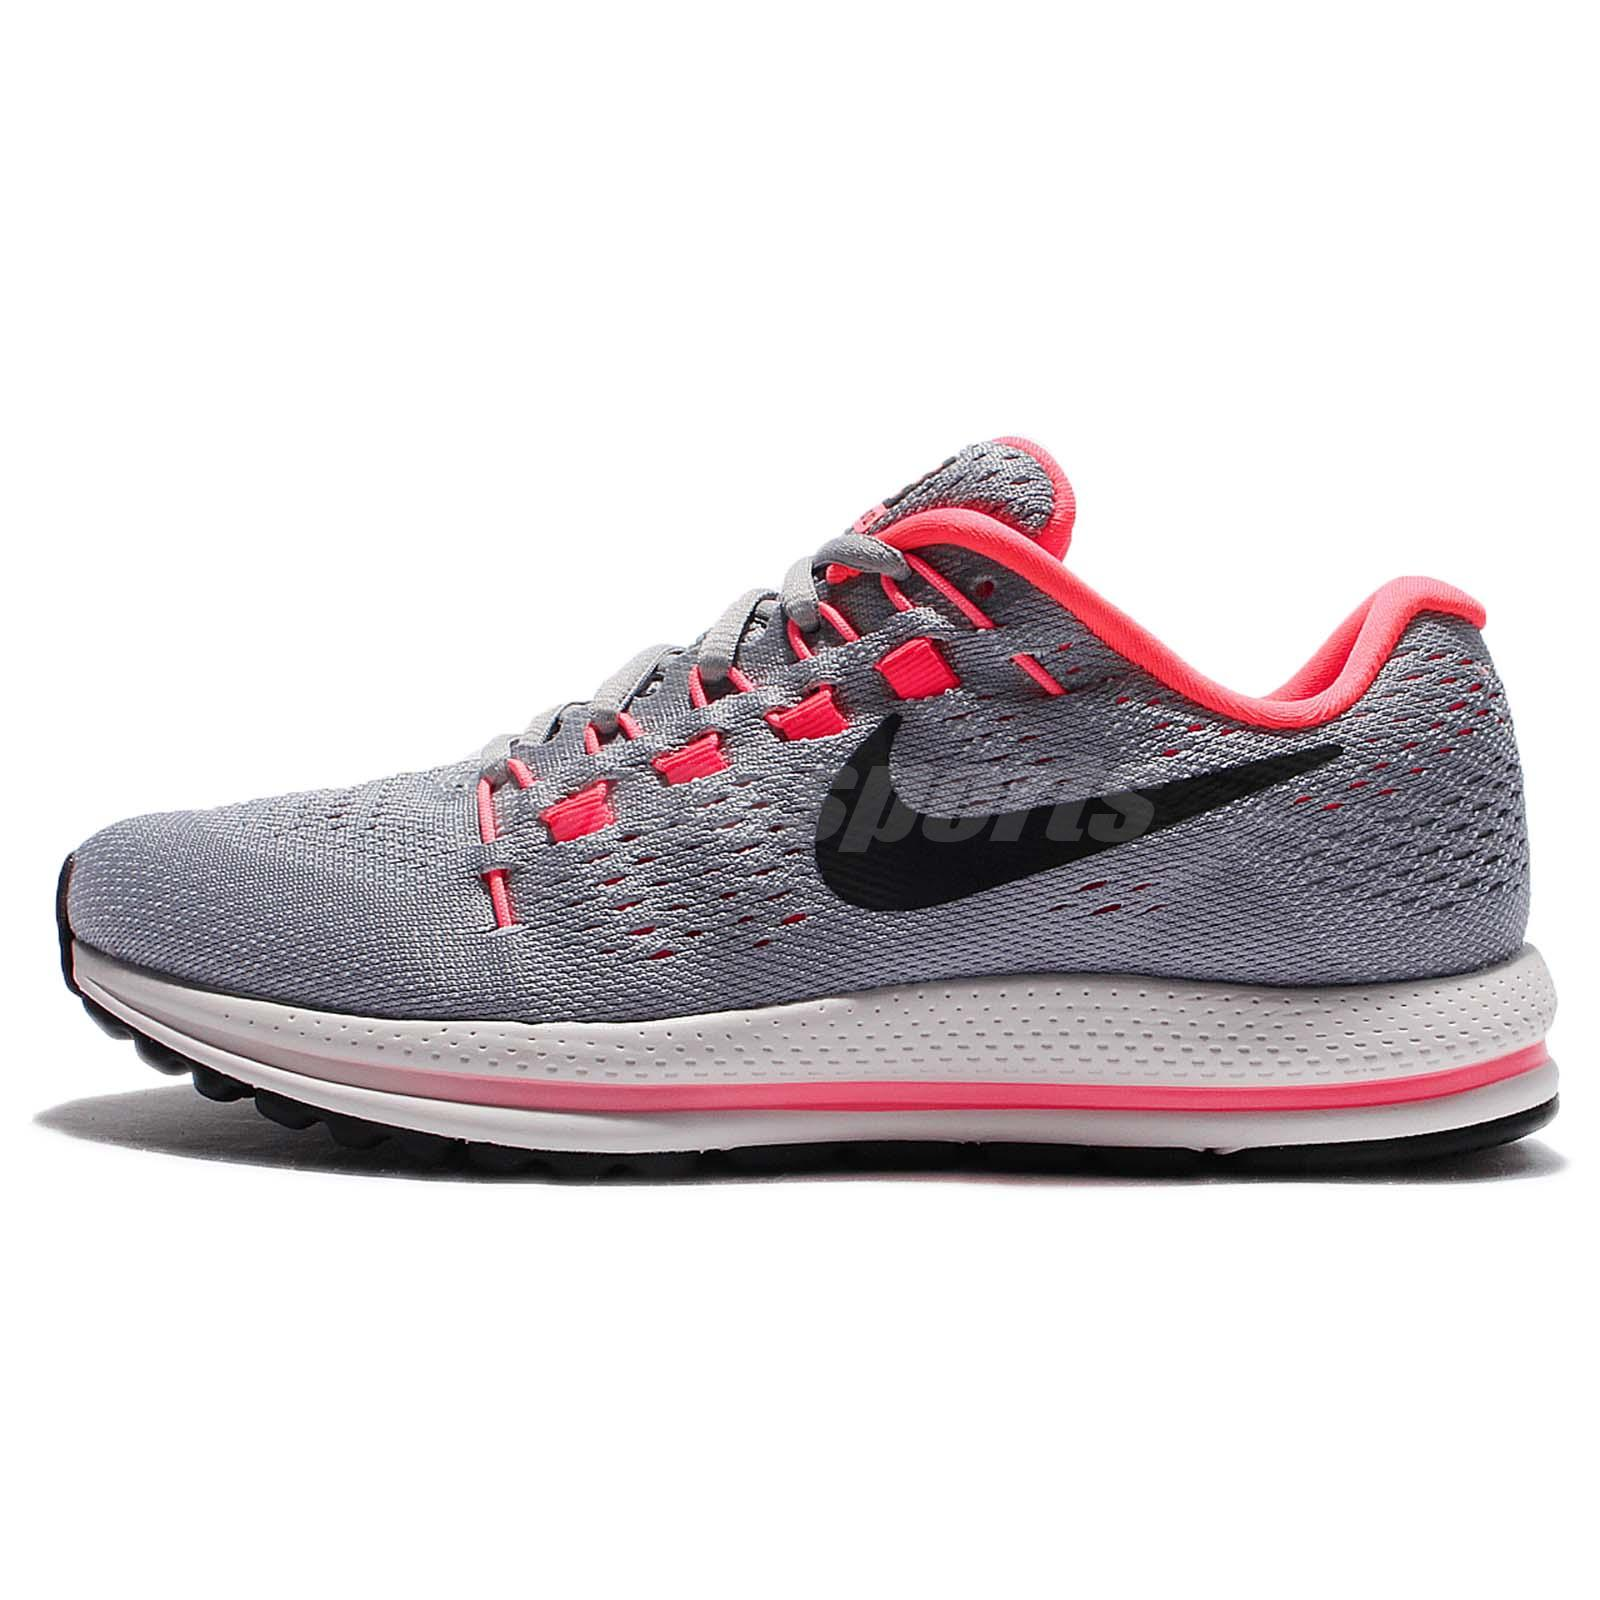 Wmns Nike Air Zoom Vomero 12 Grey Red Women Running Shoes Sneakers 863766- 002 c9b622e6f9aa